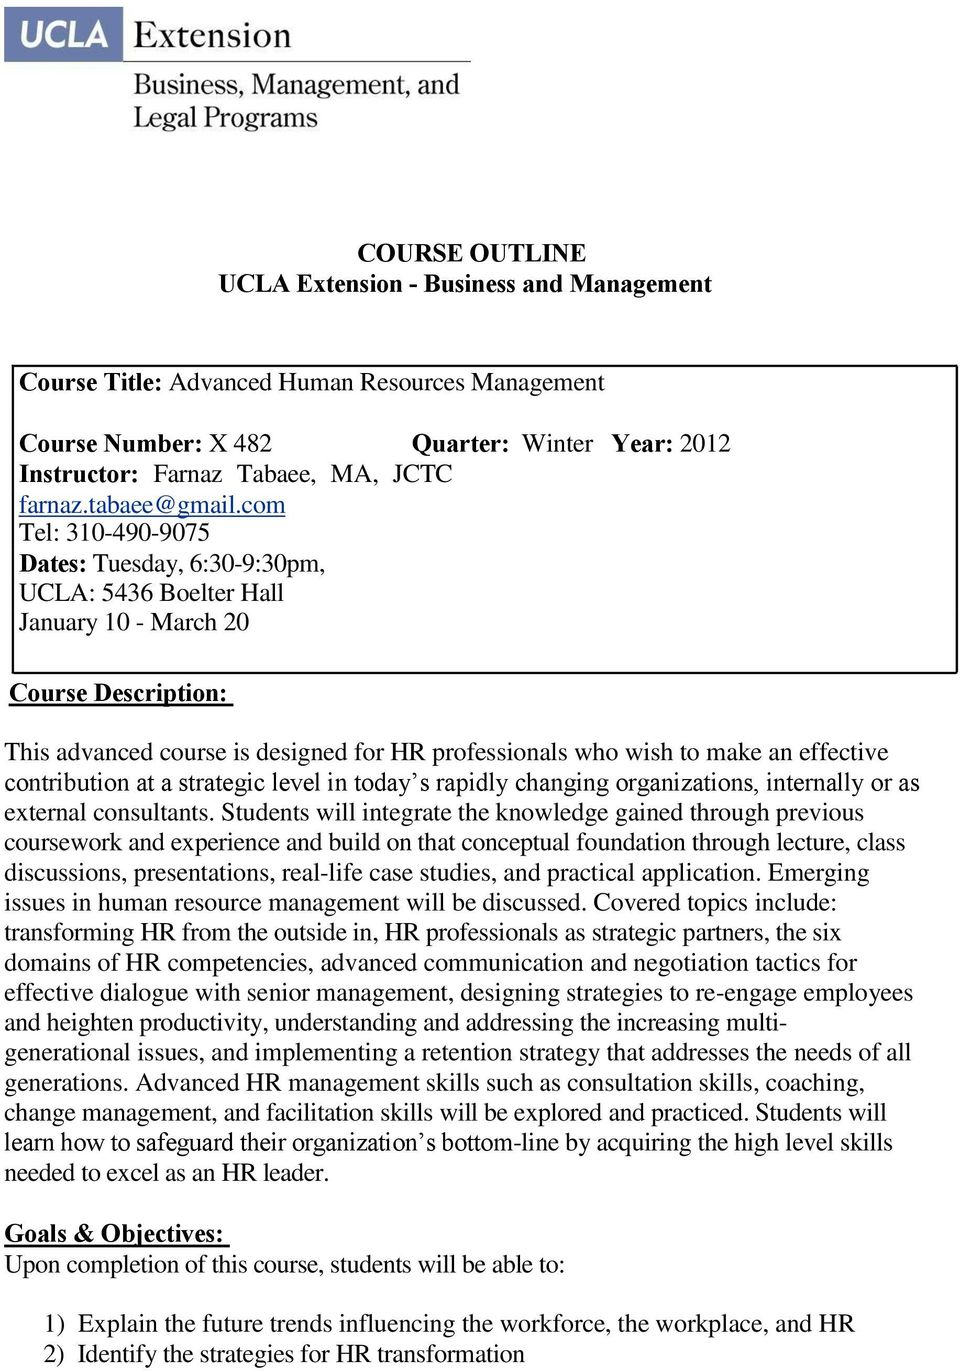 Course Outline Ucla Extension Business And Management Pdf